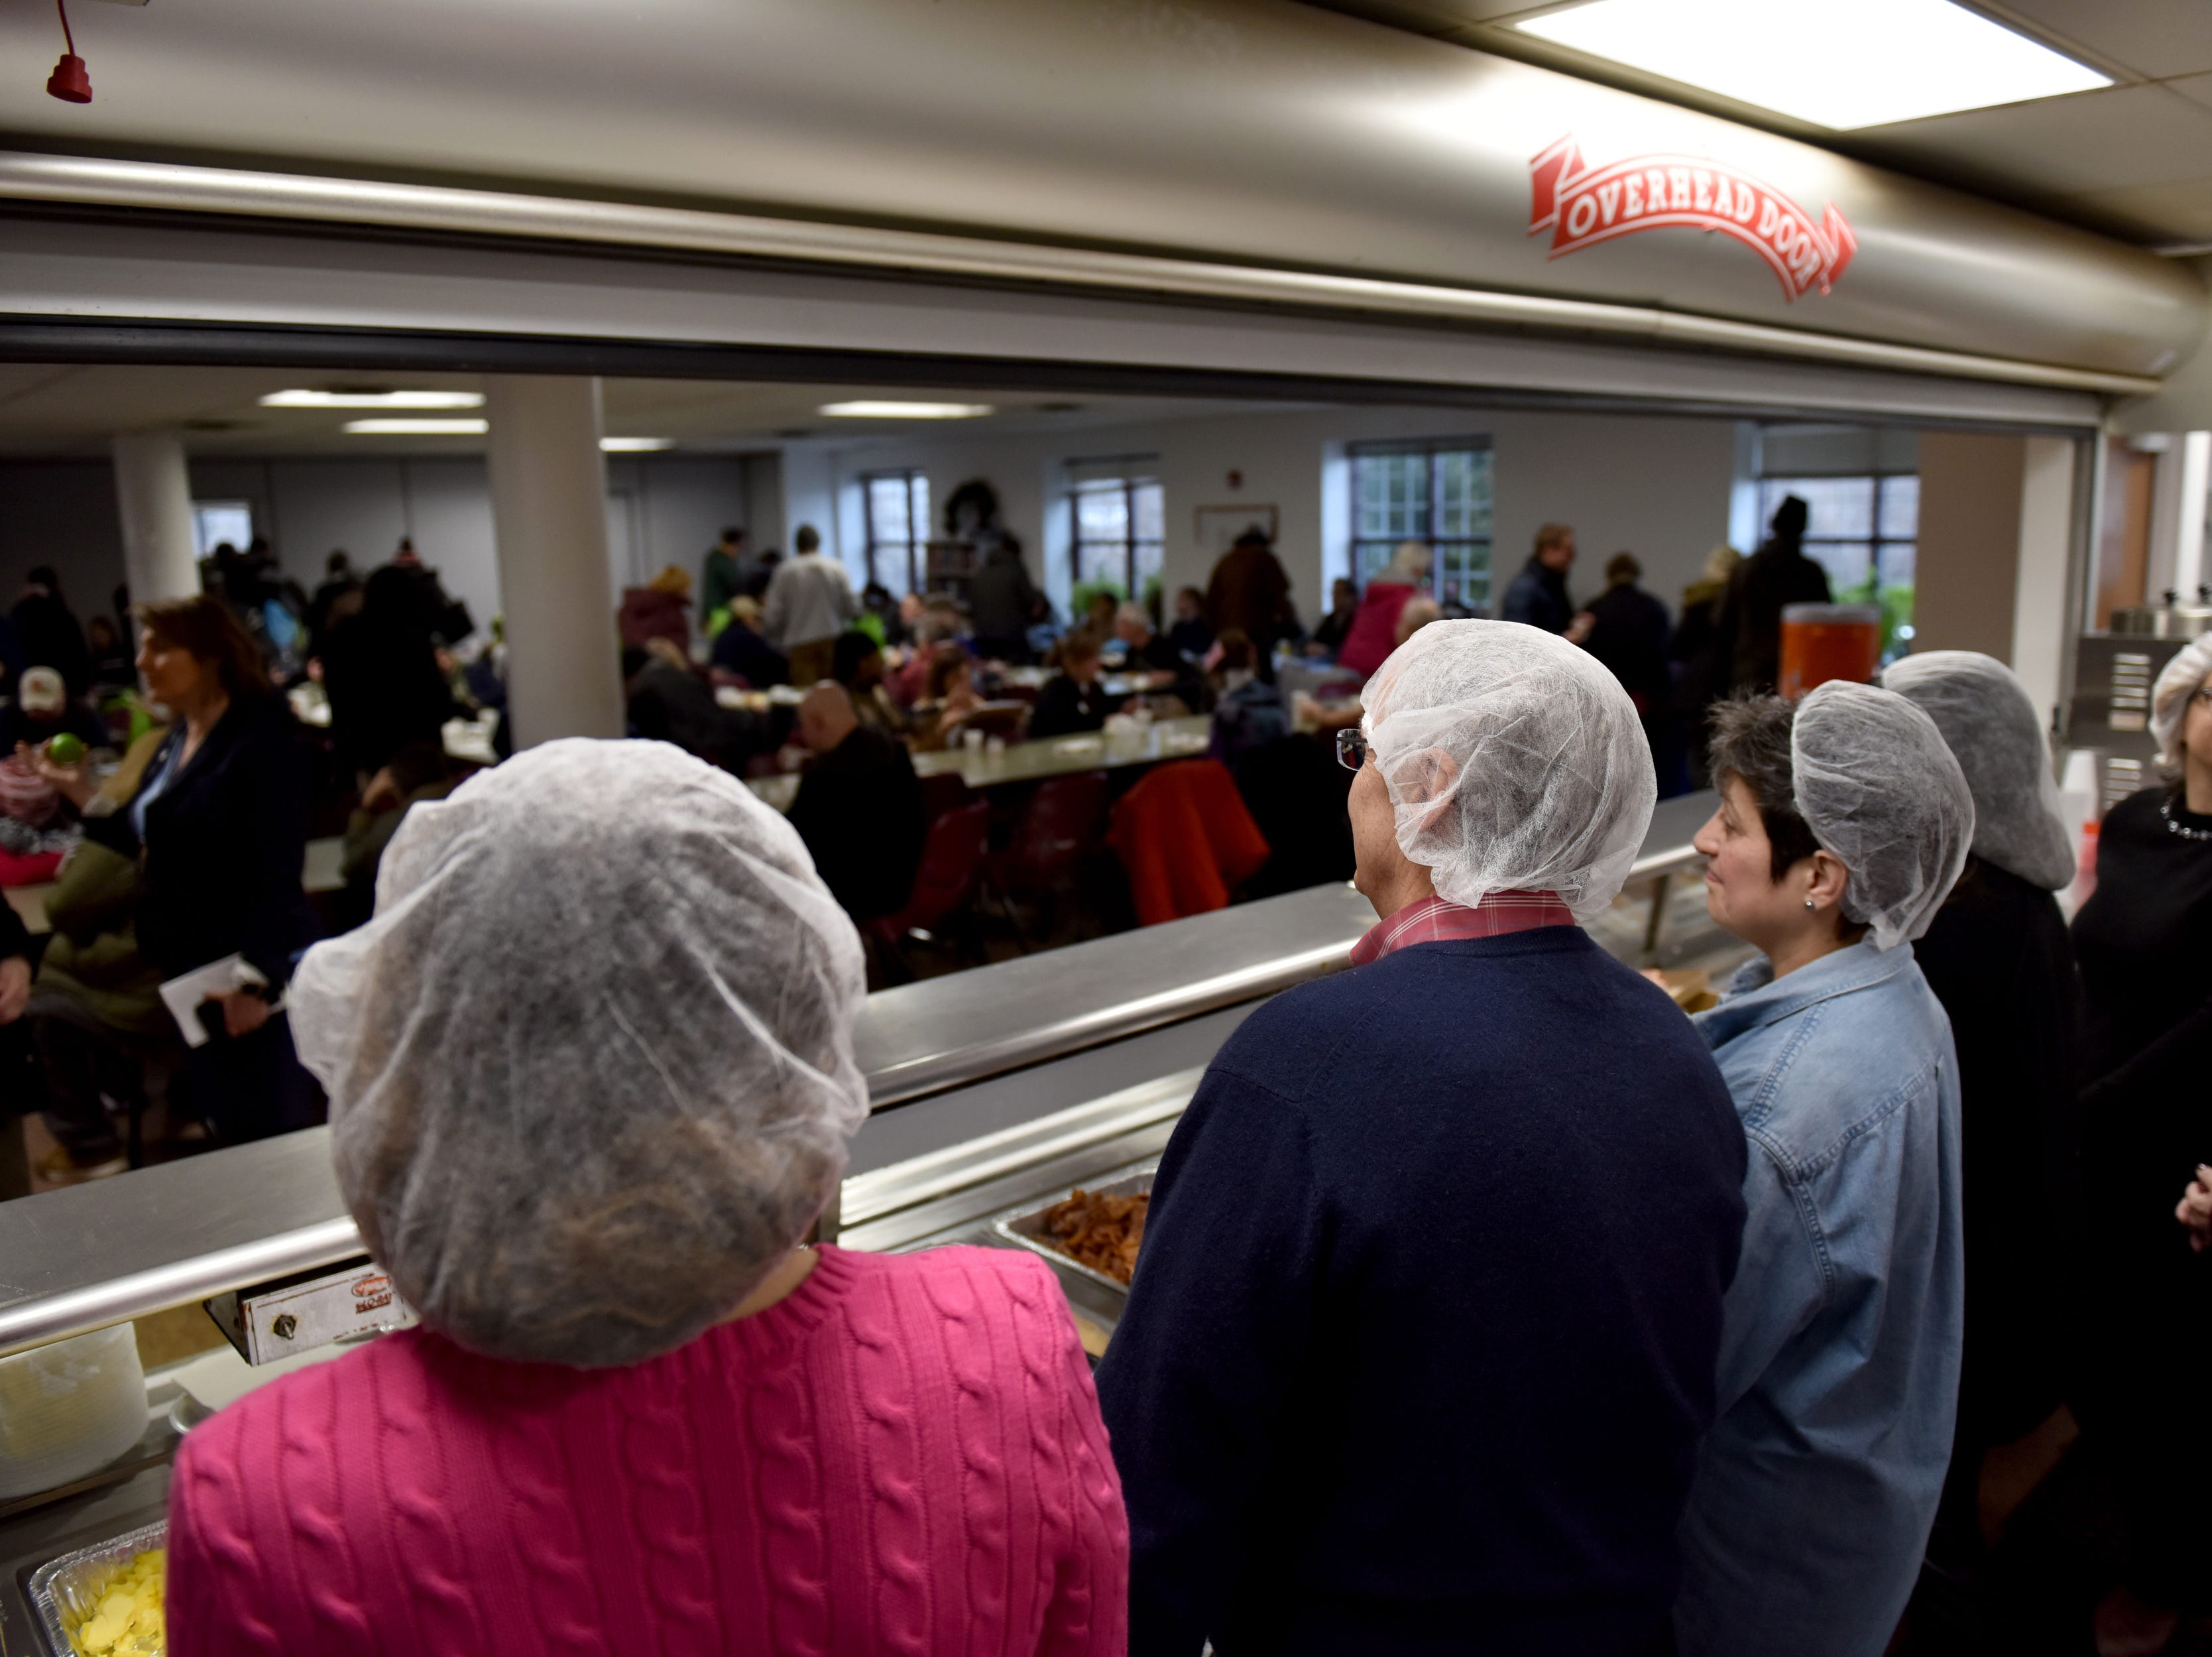 Volunteers serve breakfast to the homeless at the Bergen County Human Services Center in Hackensack, on Wednesday January 23, 2019.